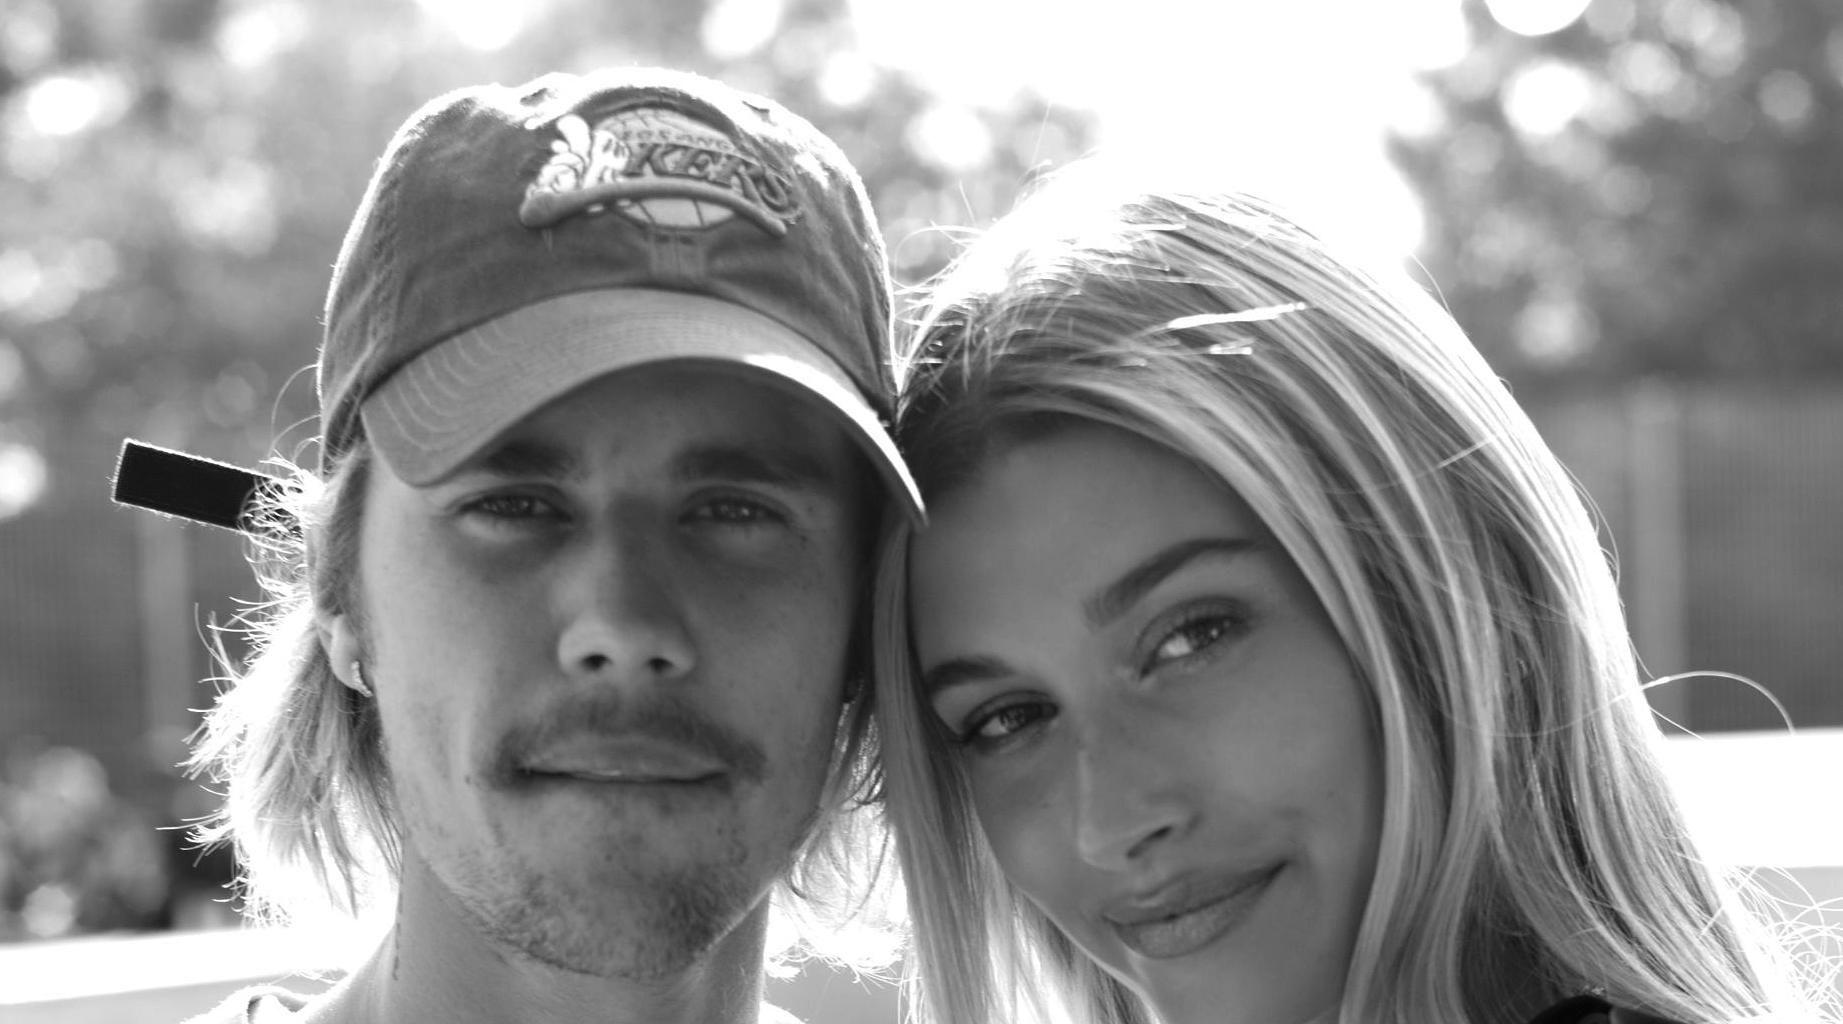 Hailey Baldwin Addresses Those Pregnancy Rumors That Justin Bieber Sparked With 'Mom And Dad' Post!